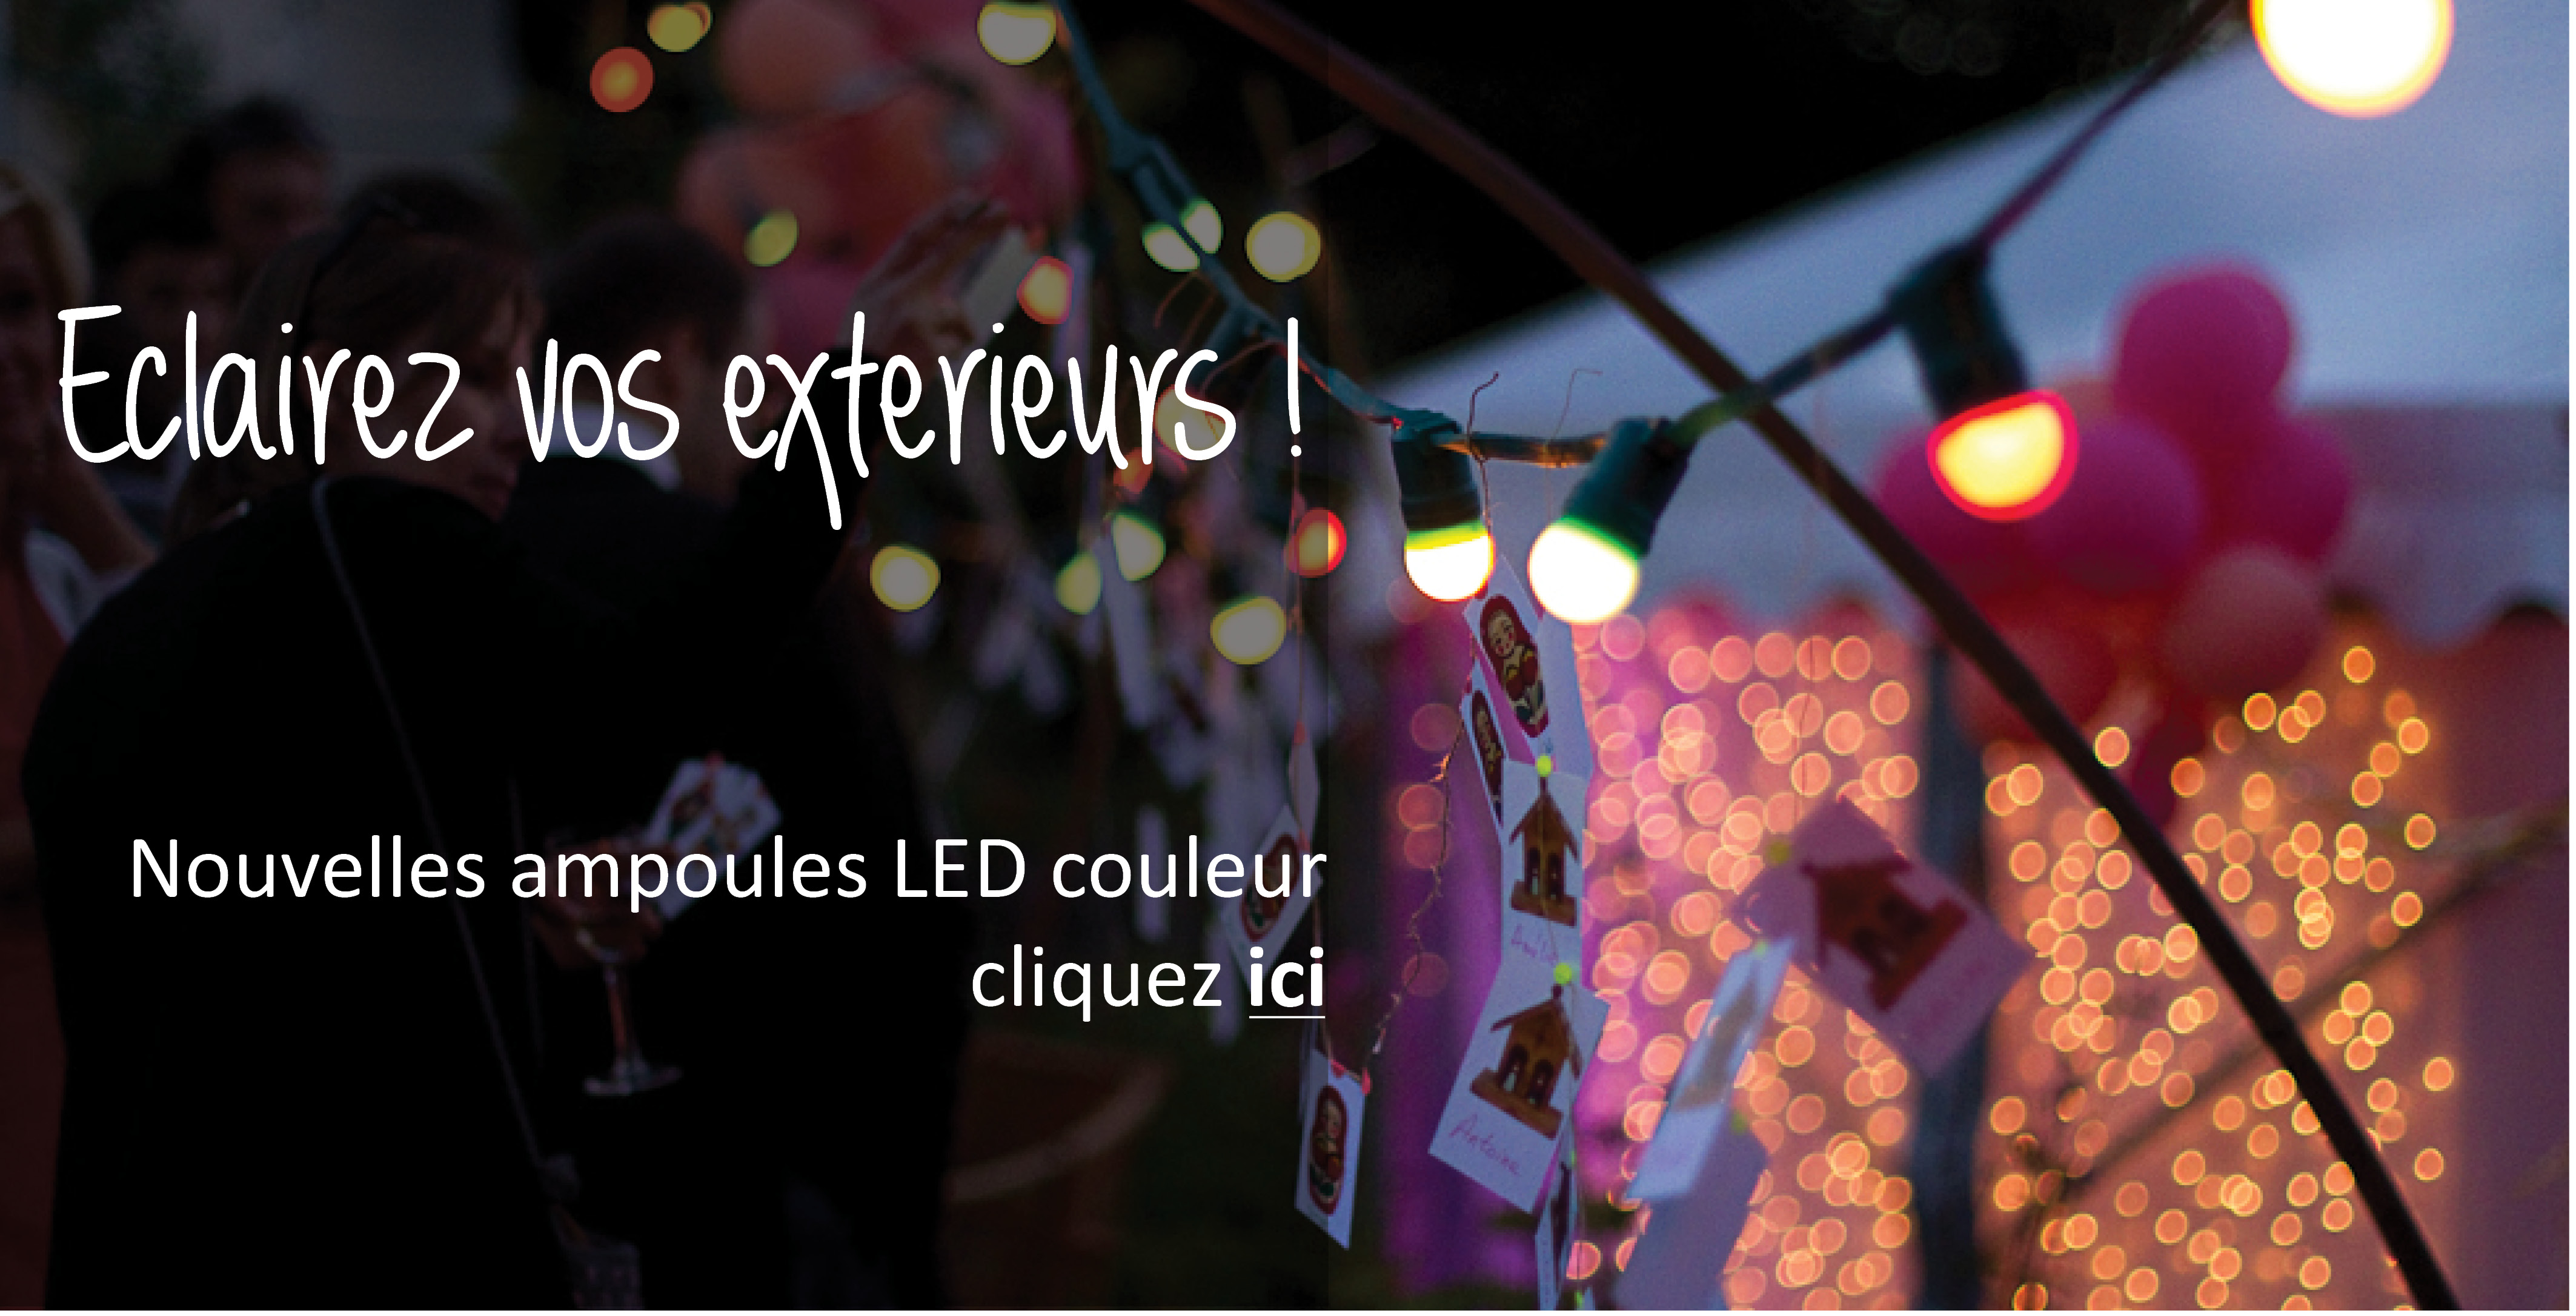 LED COULEUR